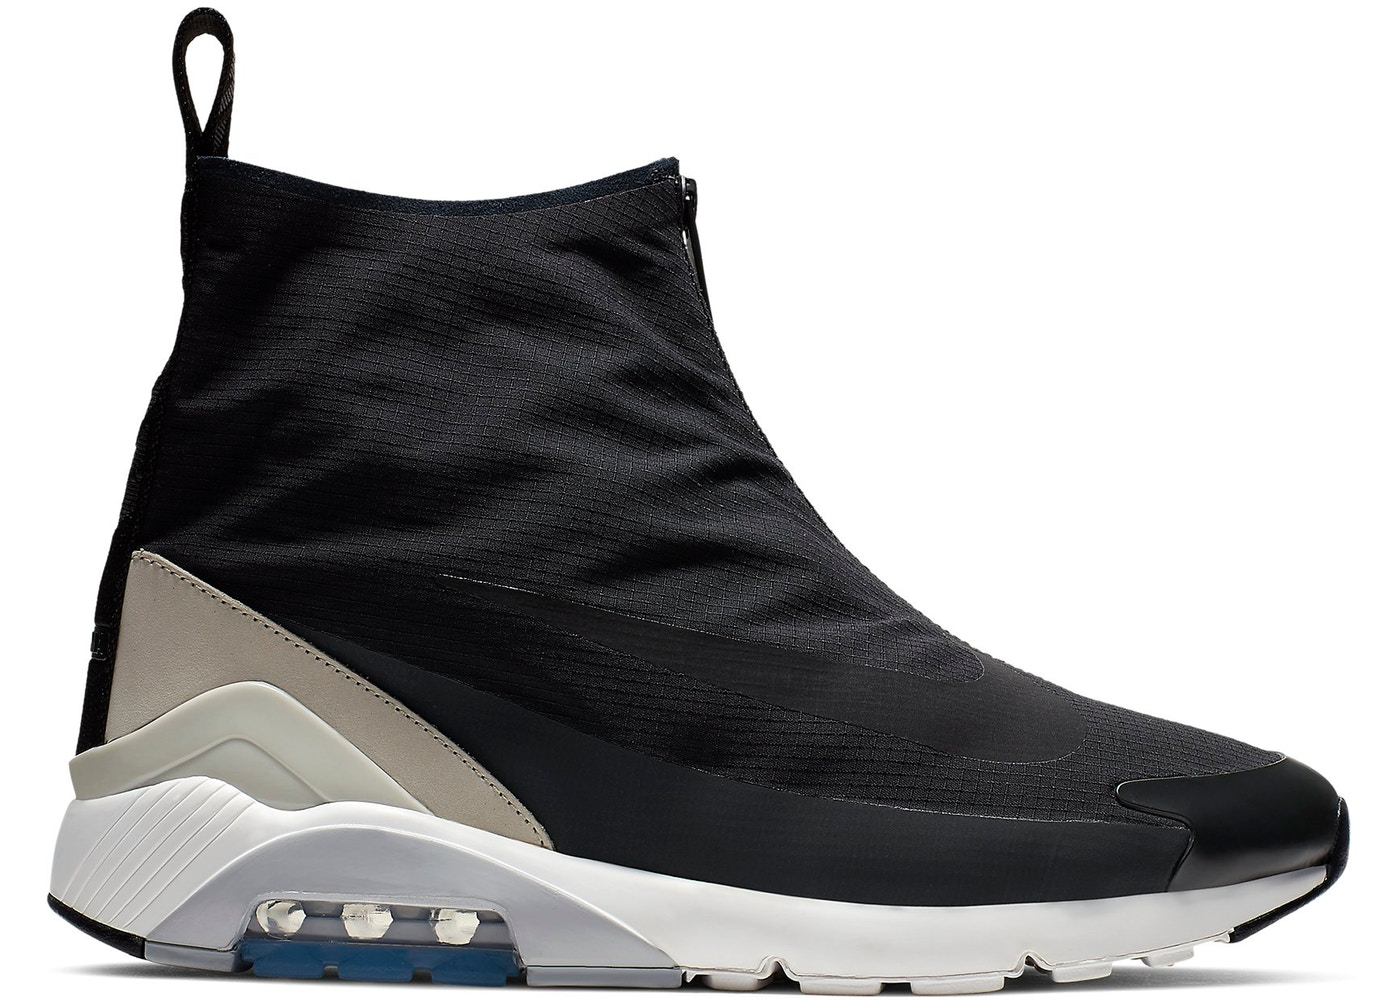 Air Max 180 High Ambush Black - BV0145-001